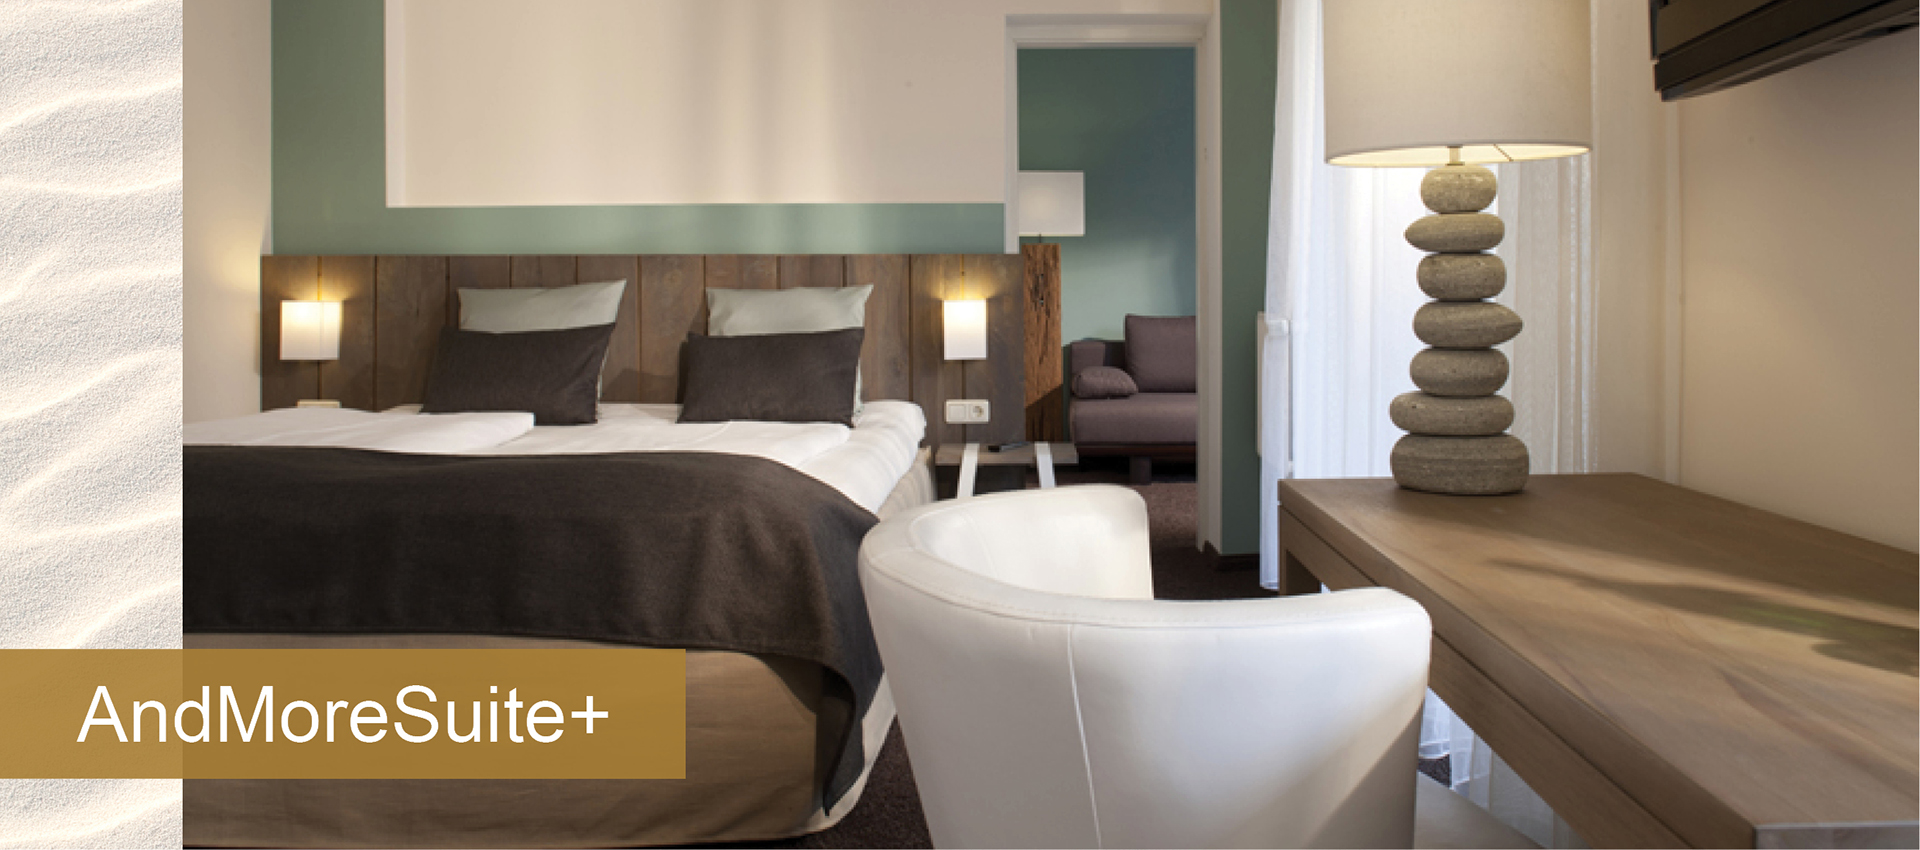 Hotel SAND Timmendorfer Strand in Schleswig Holstein Zimmer rooms and more suite